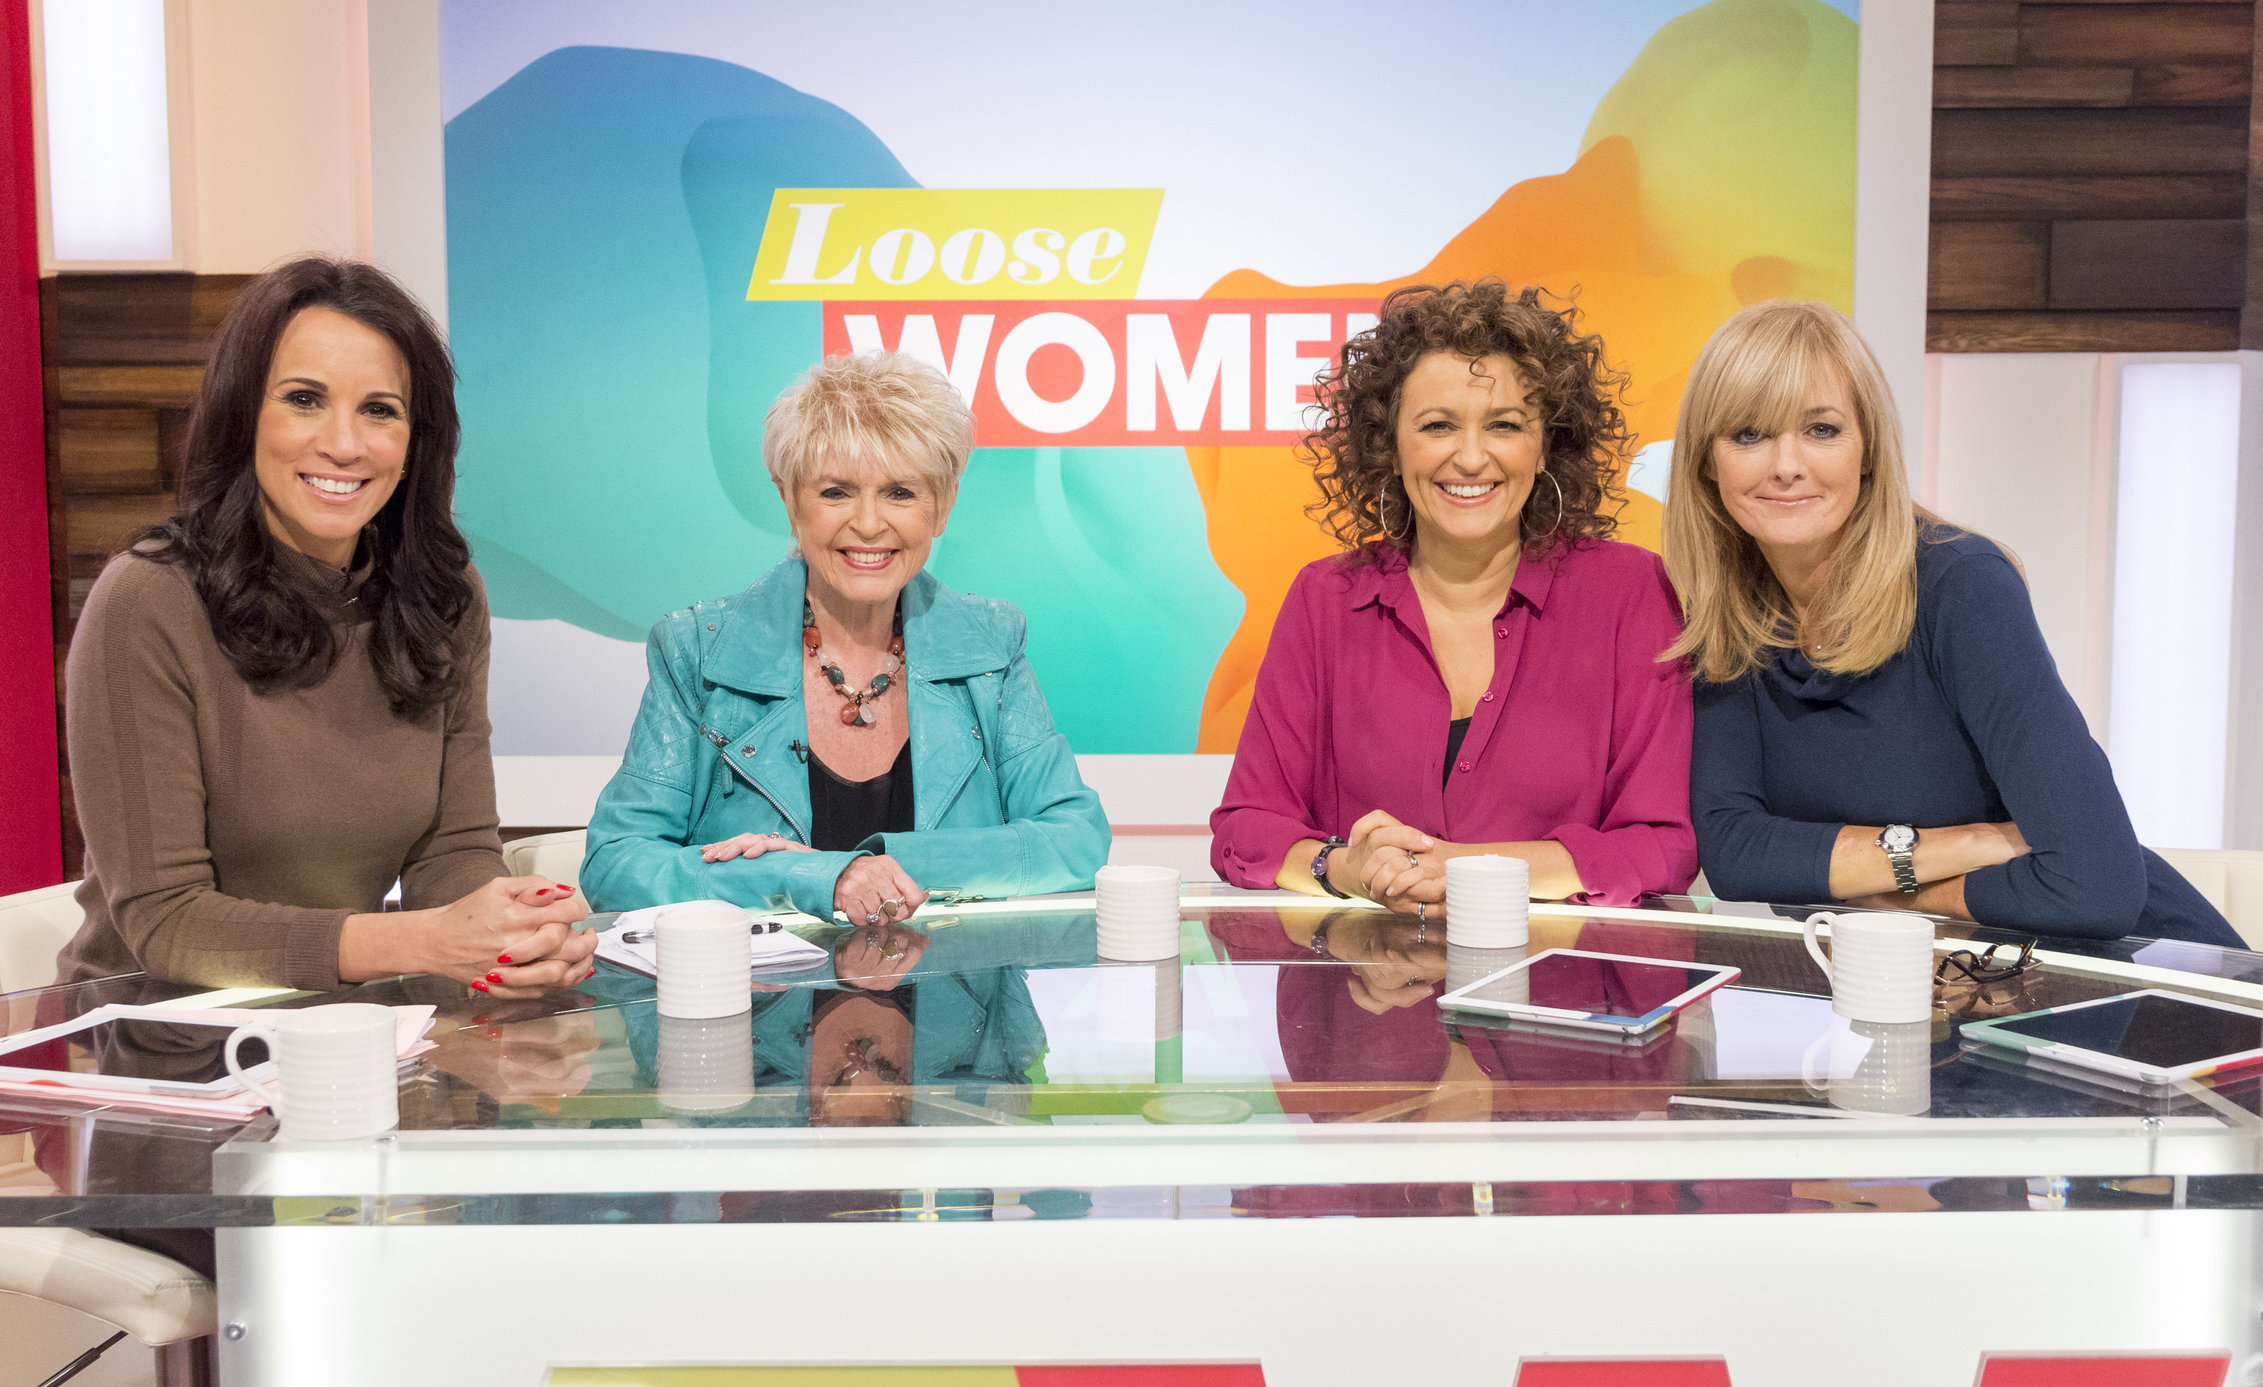 Are you a Loose Women expert? Take our quiz and find out